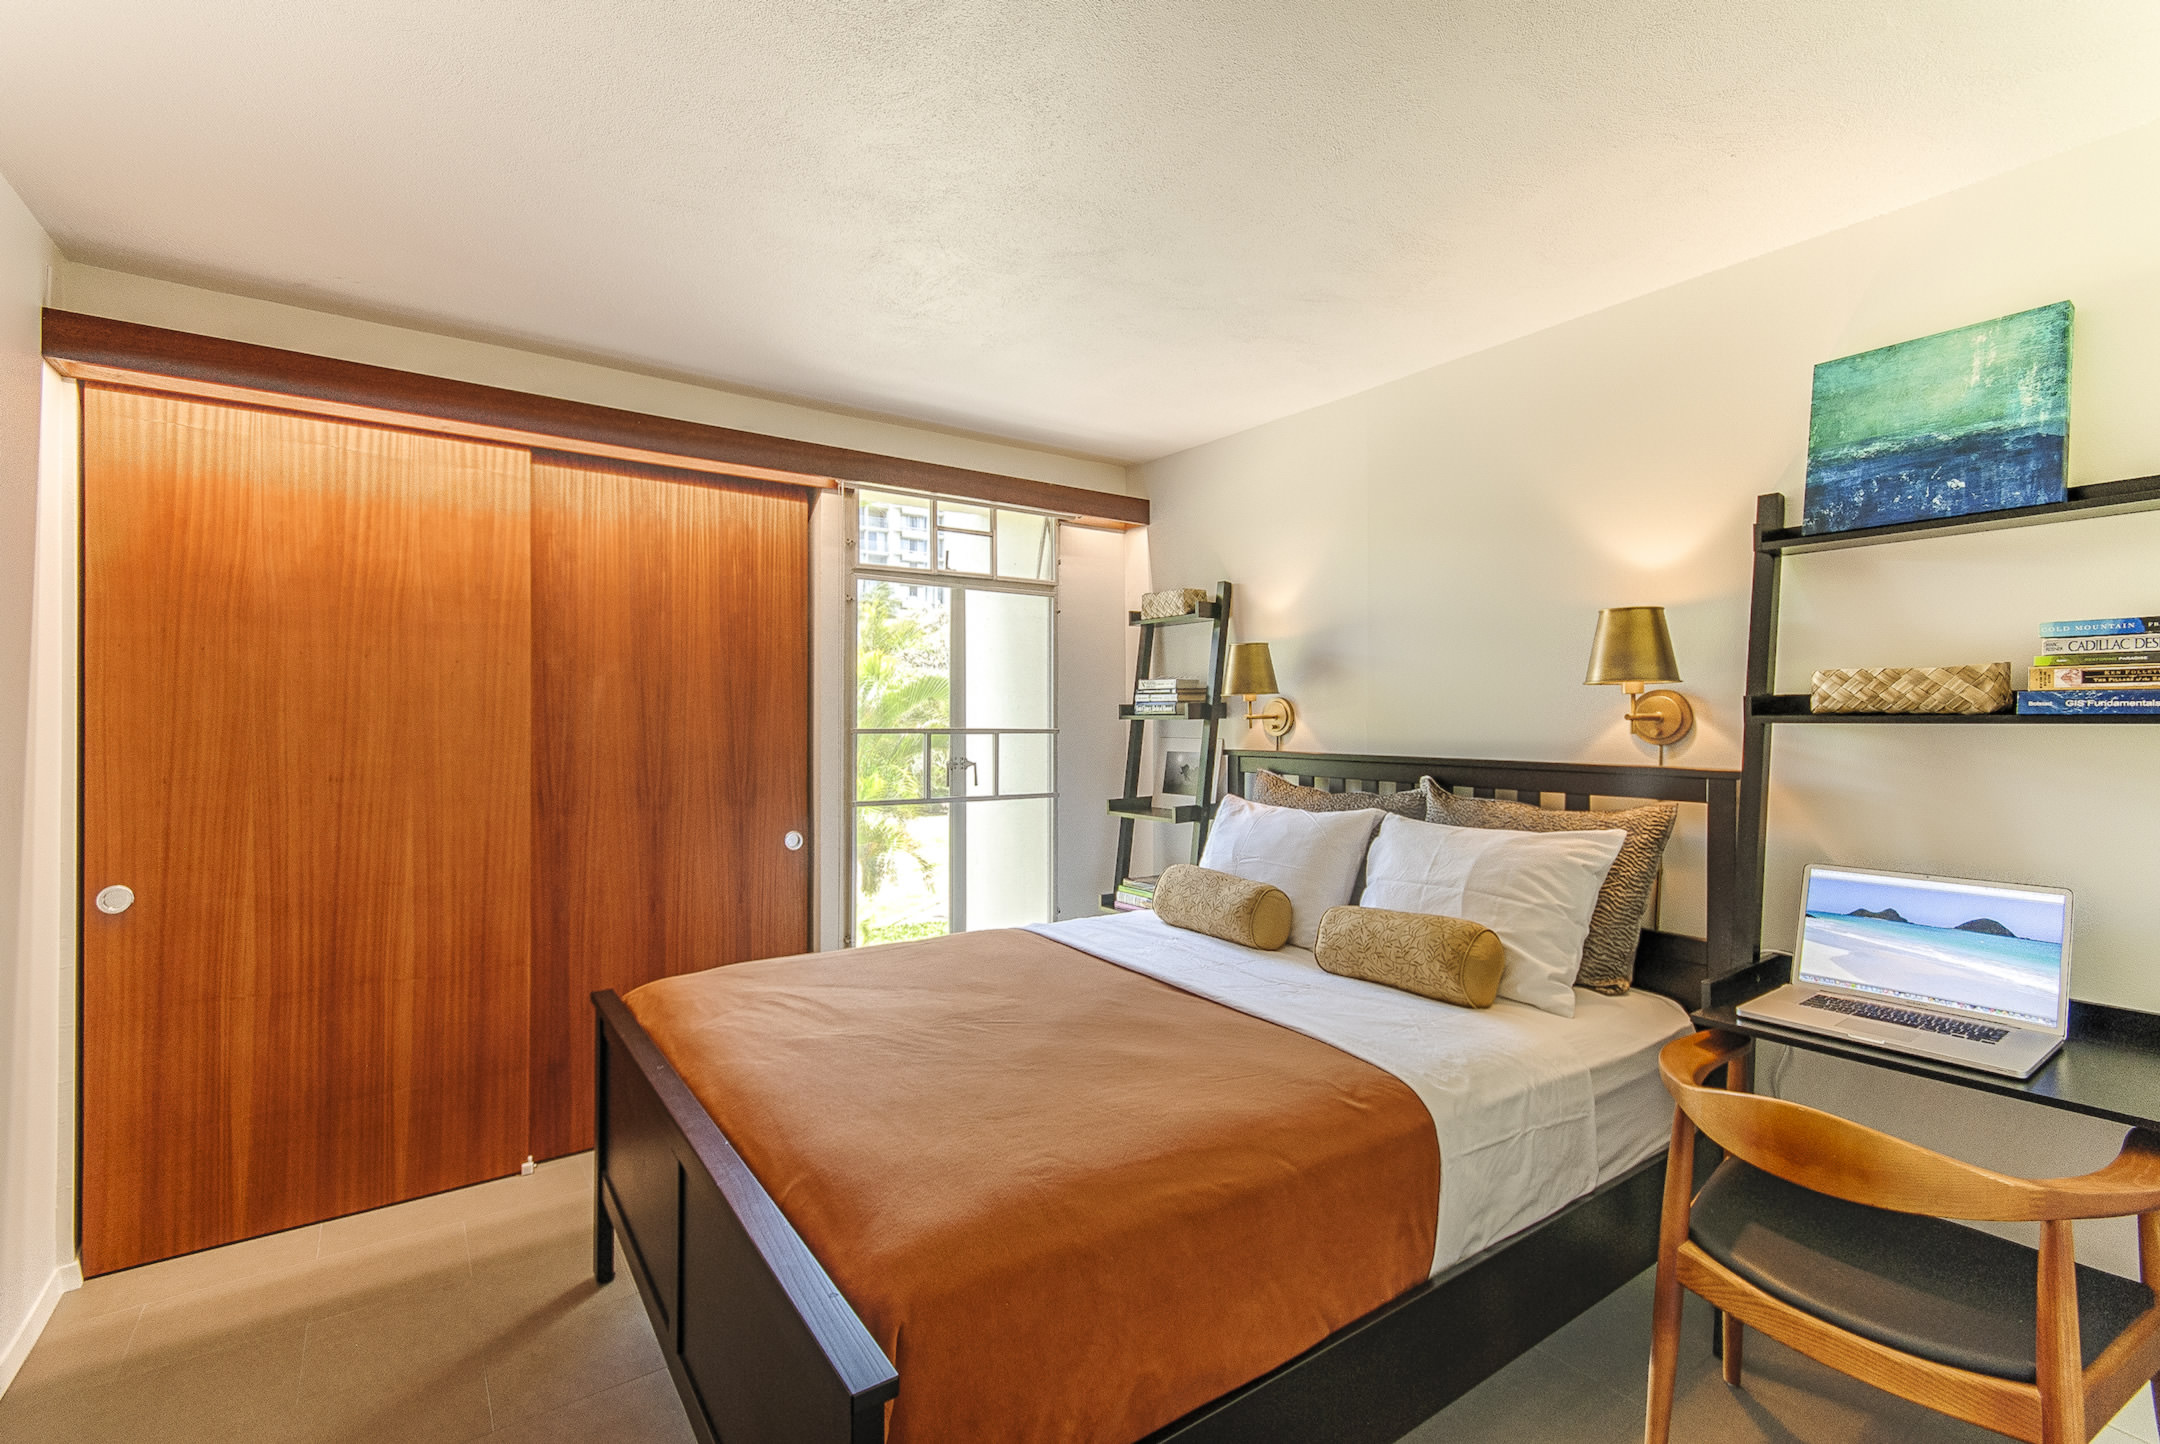 3 Bedroom Apartments Waikiki 28 Images Pin By Angie Pequero On Miami Beach Condos Pinterest